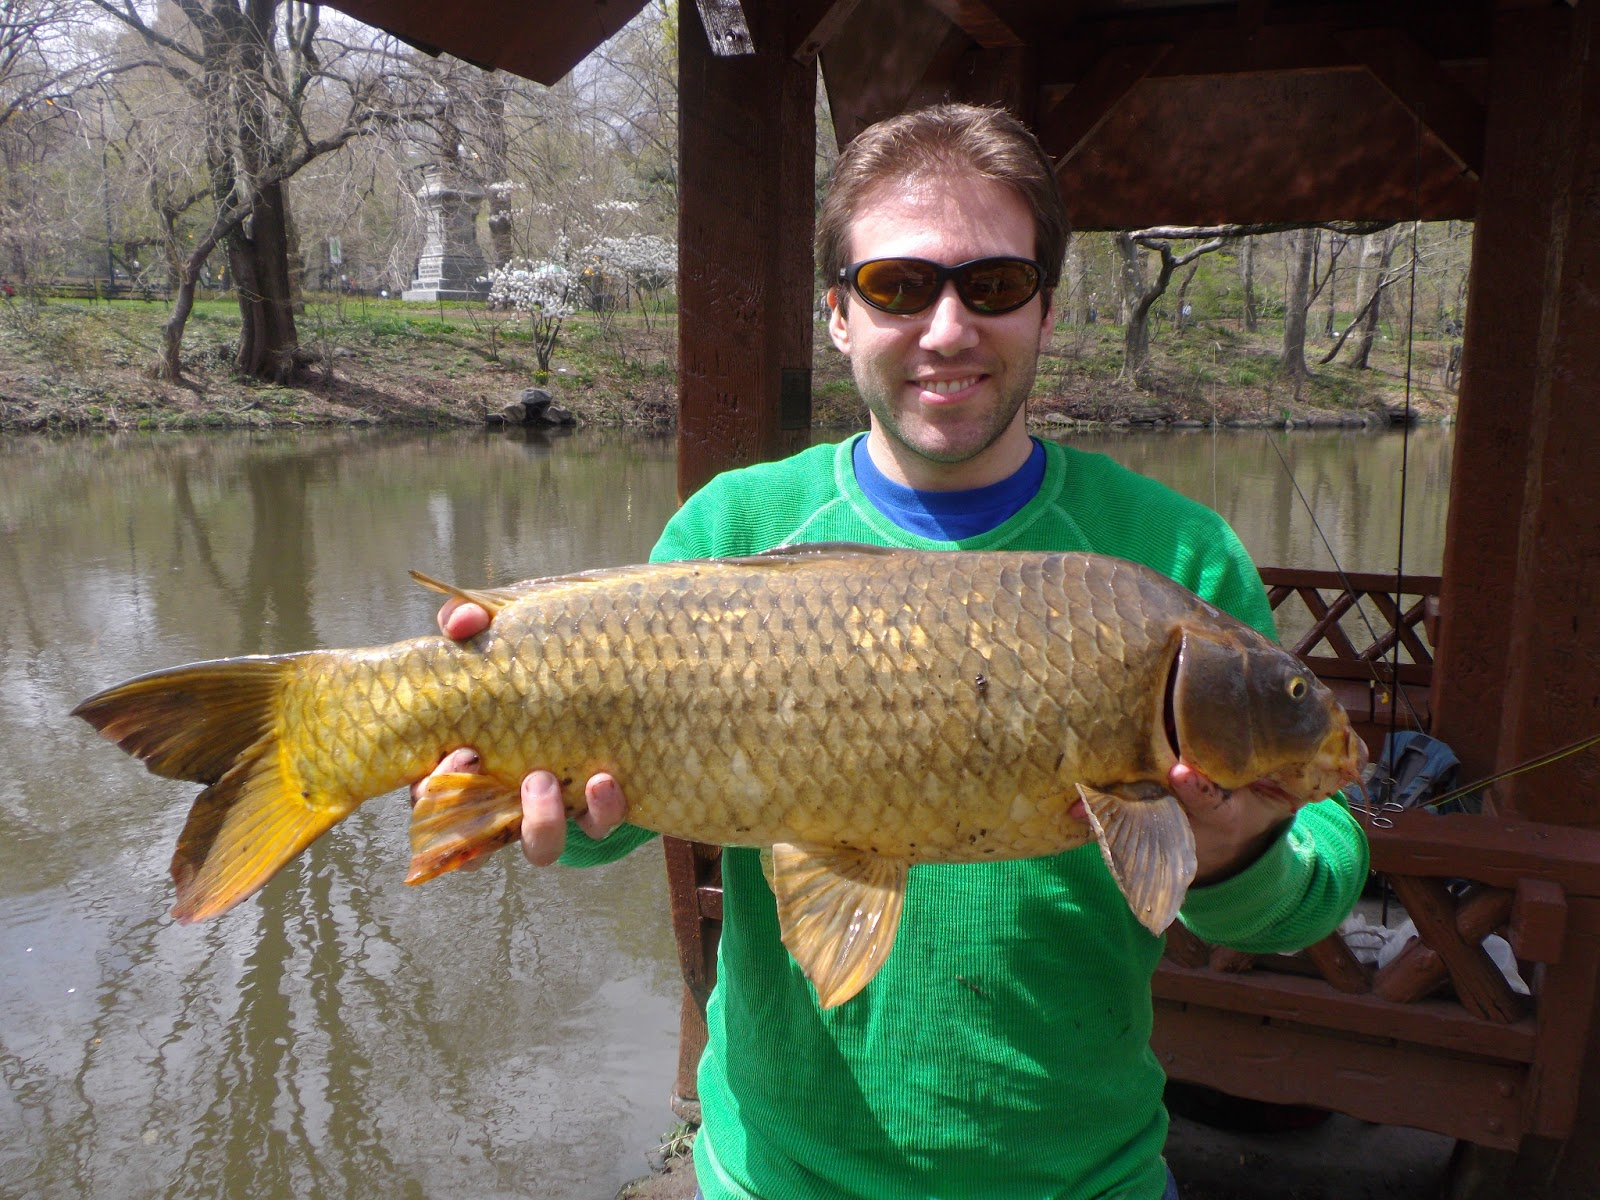 Fly fishing for carp in central park the great lakes of nyc for Carp fly fishing